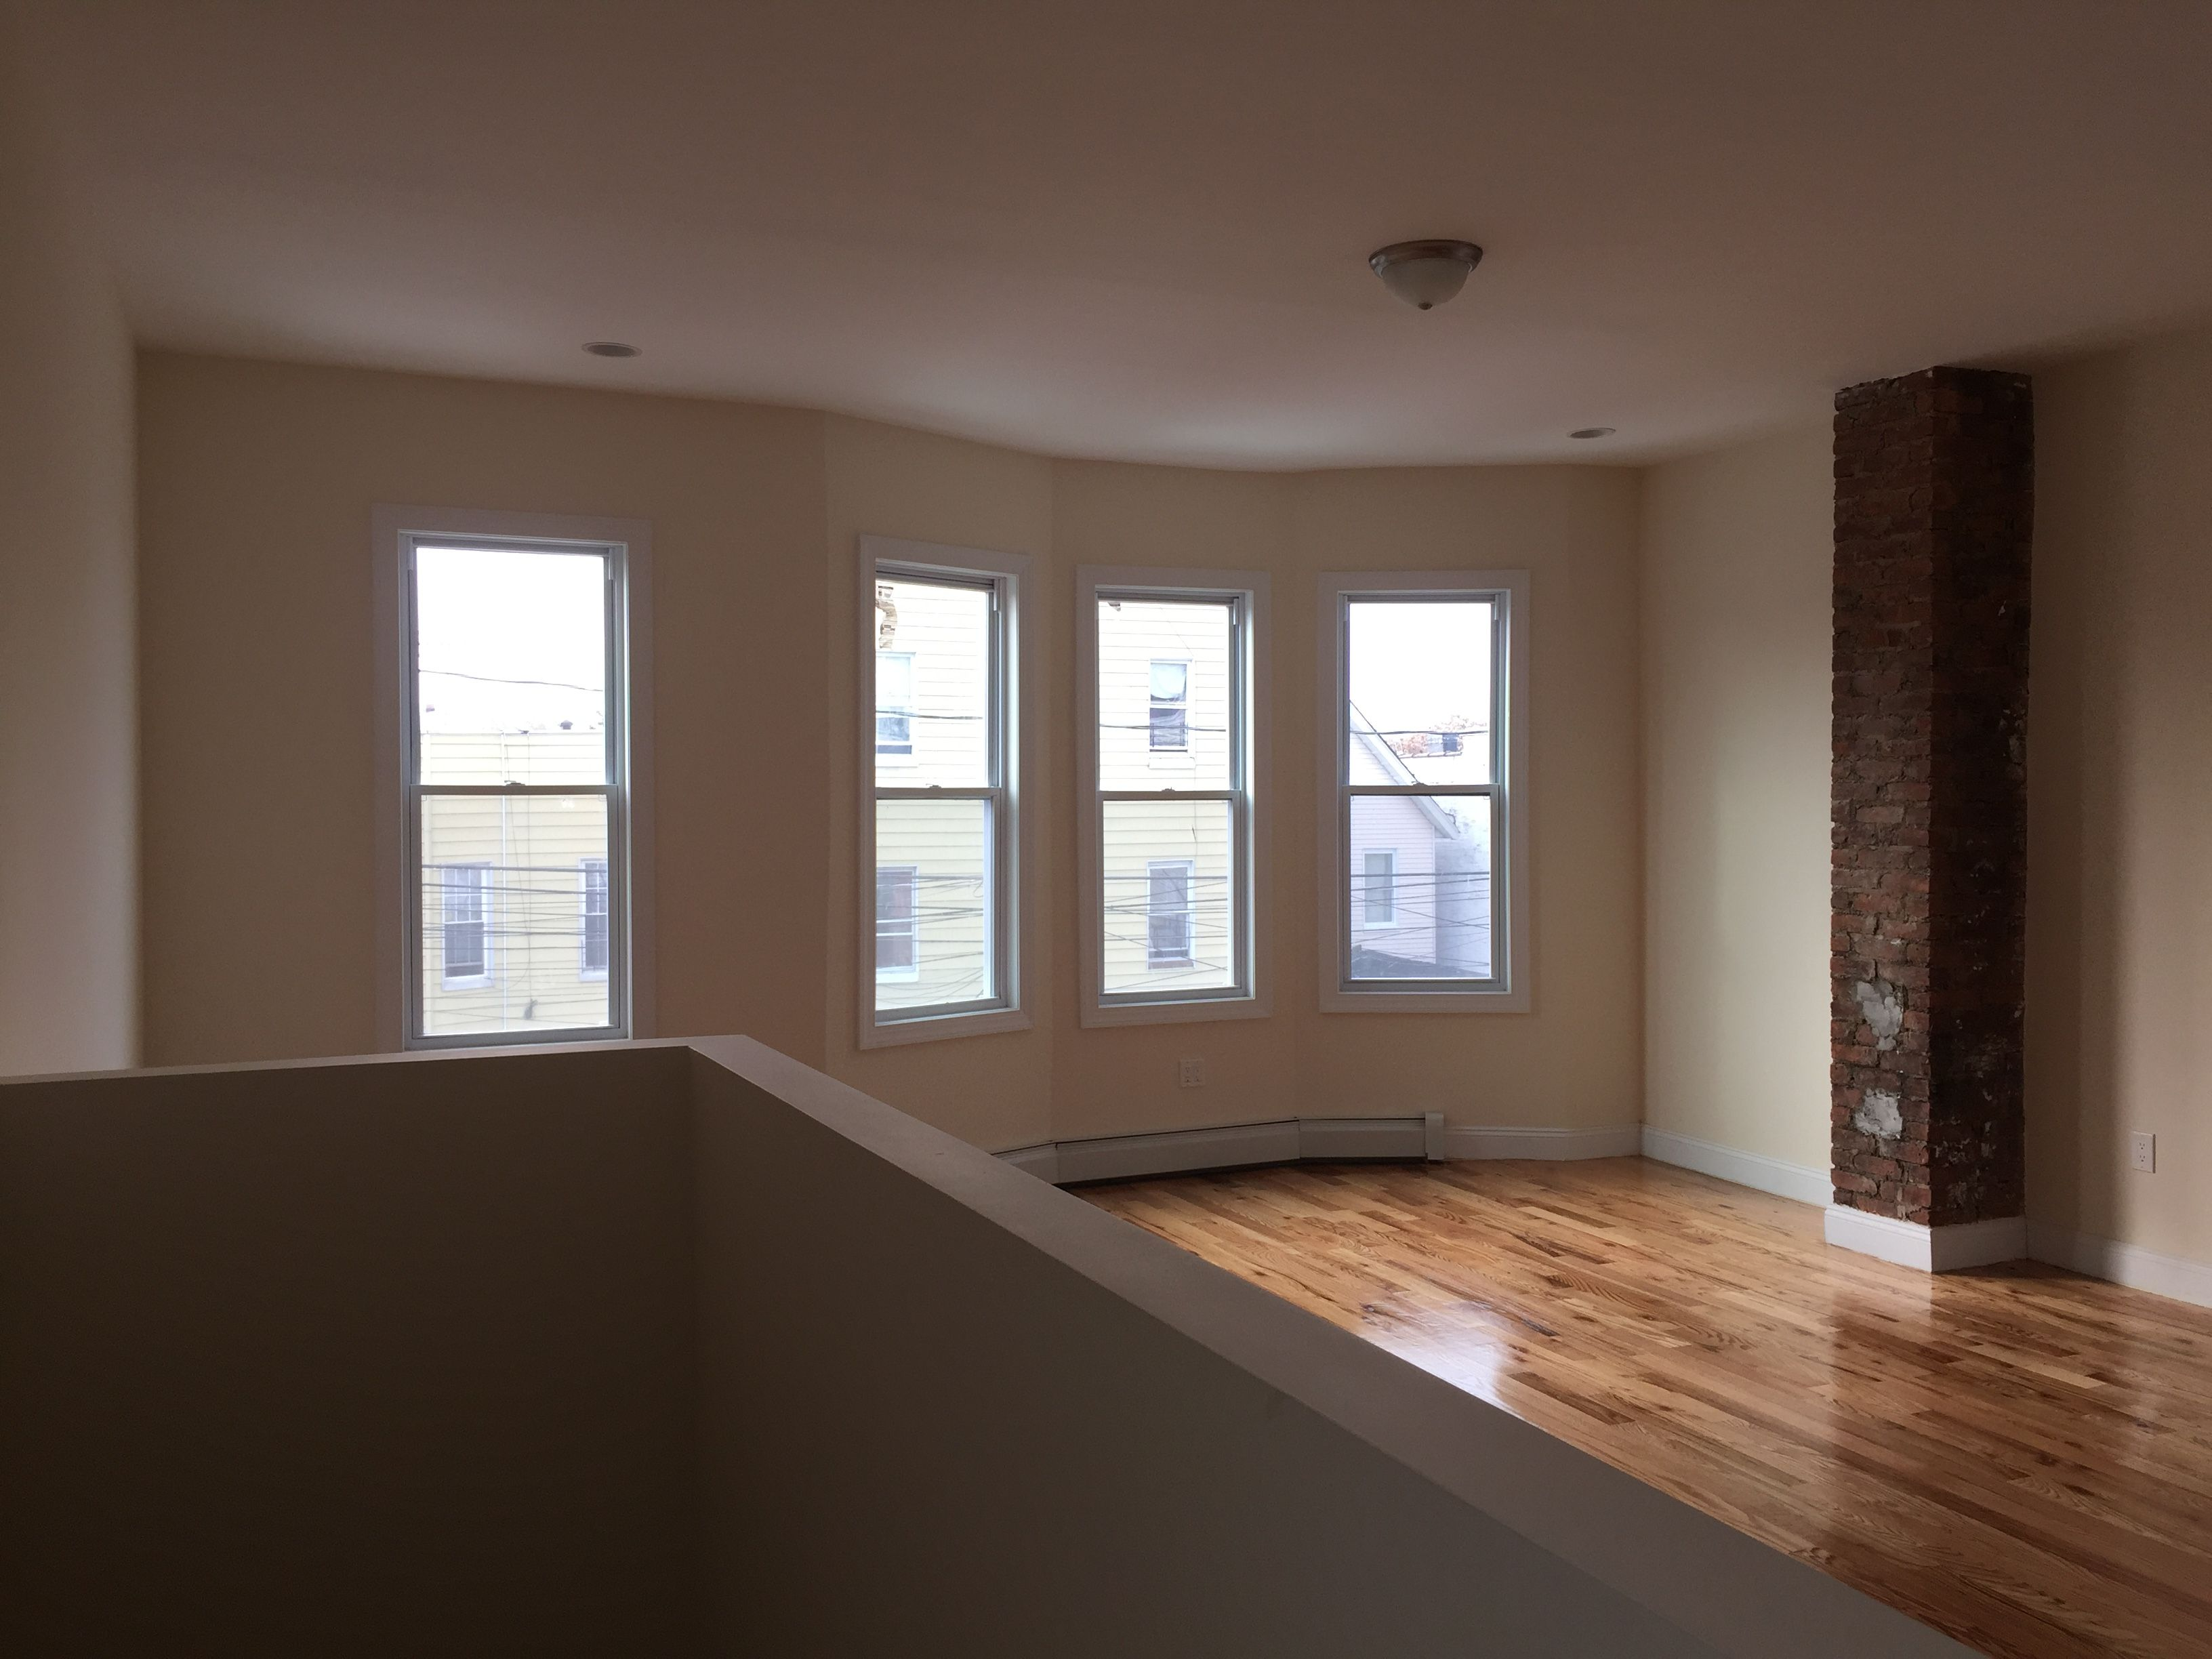 3 Bedroom 2 Bath Apartment For Rent In The Bronx 2 300 Text Agent Liz At 631 793 5425 Or Email Lizdk Beautiful Bathrooms Apartments For Rent Big Windows